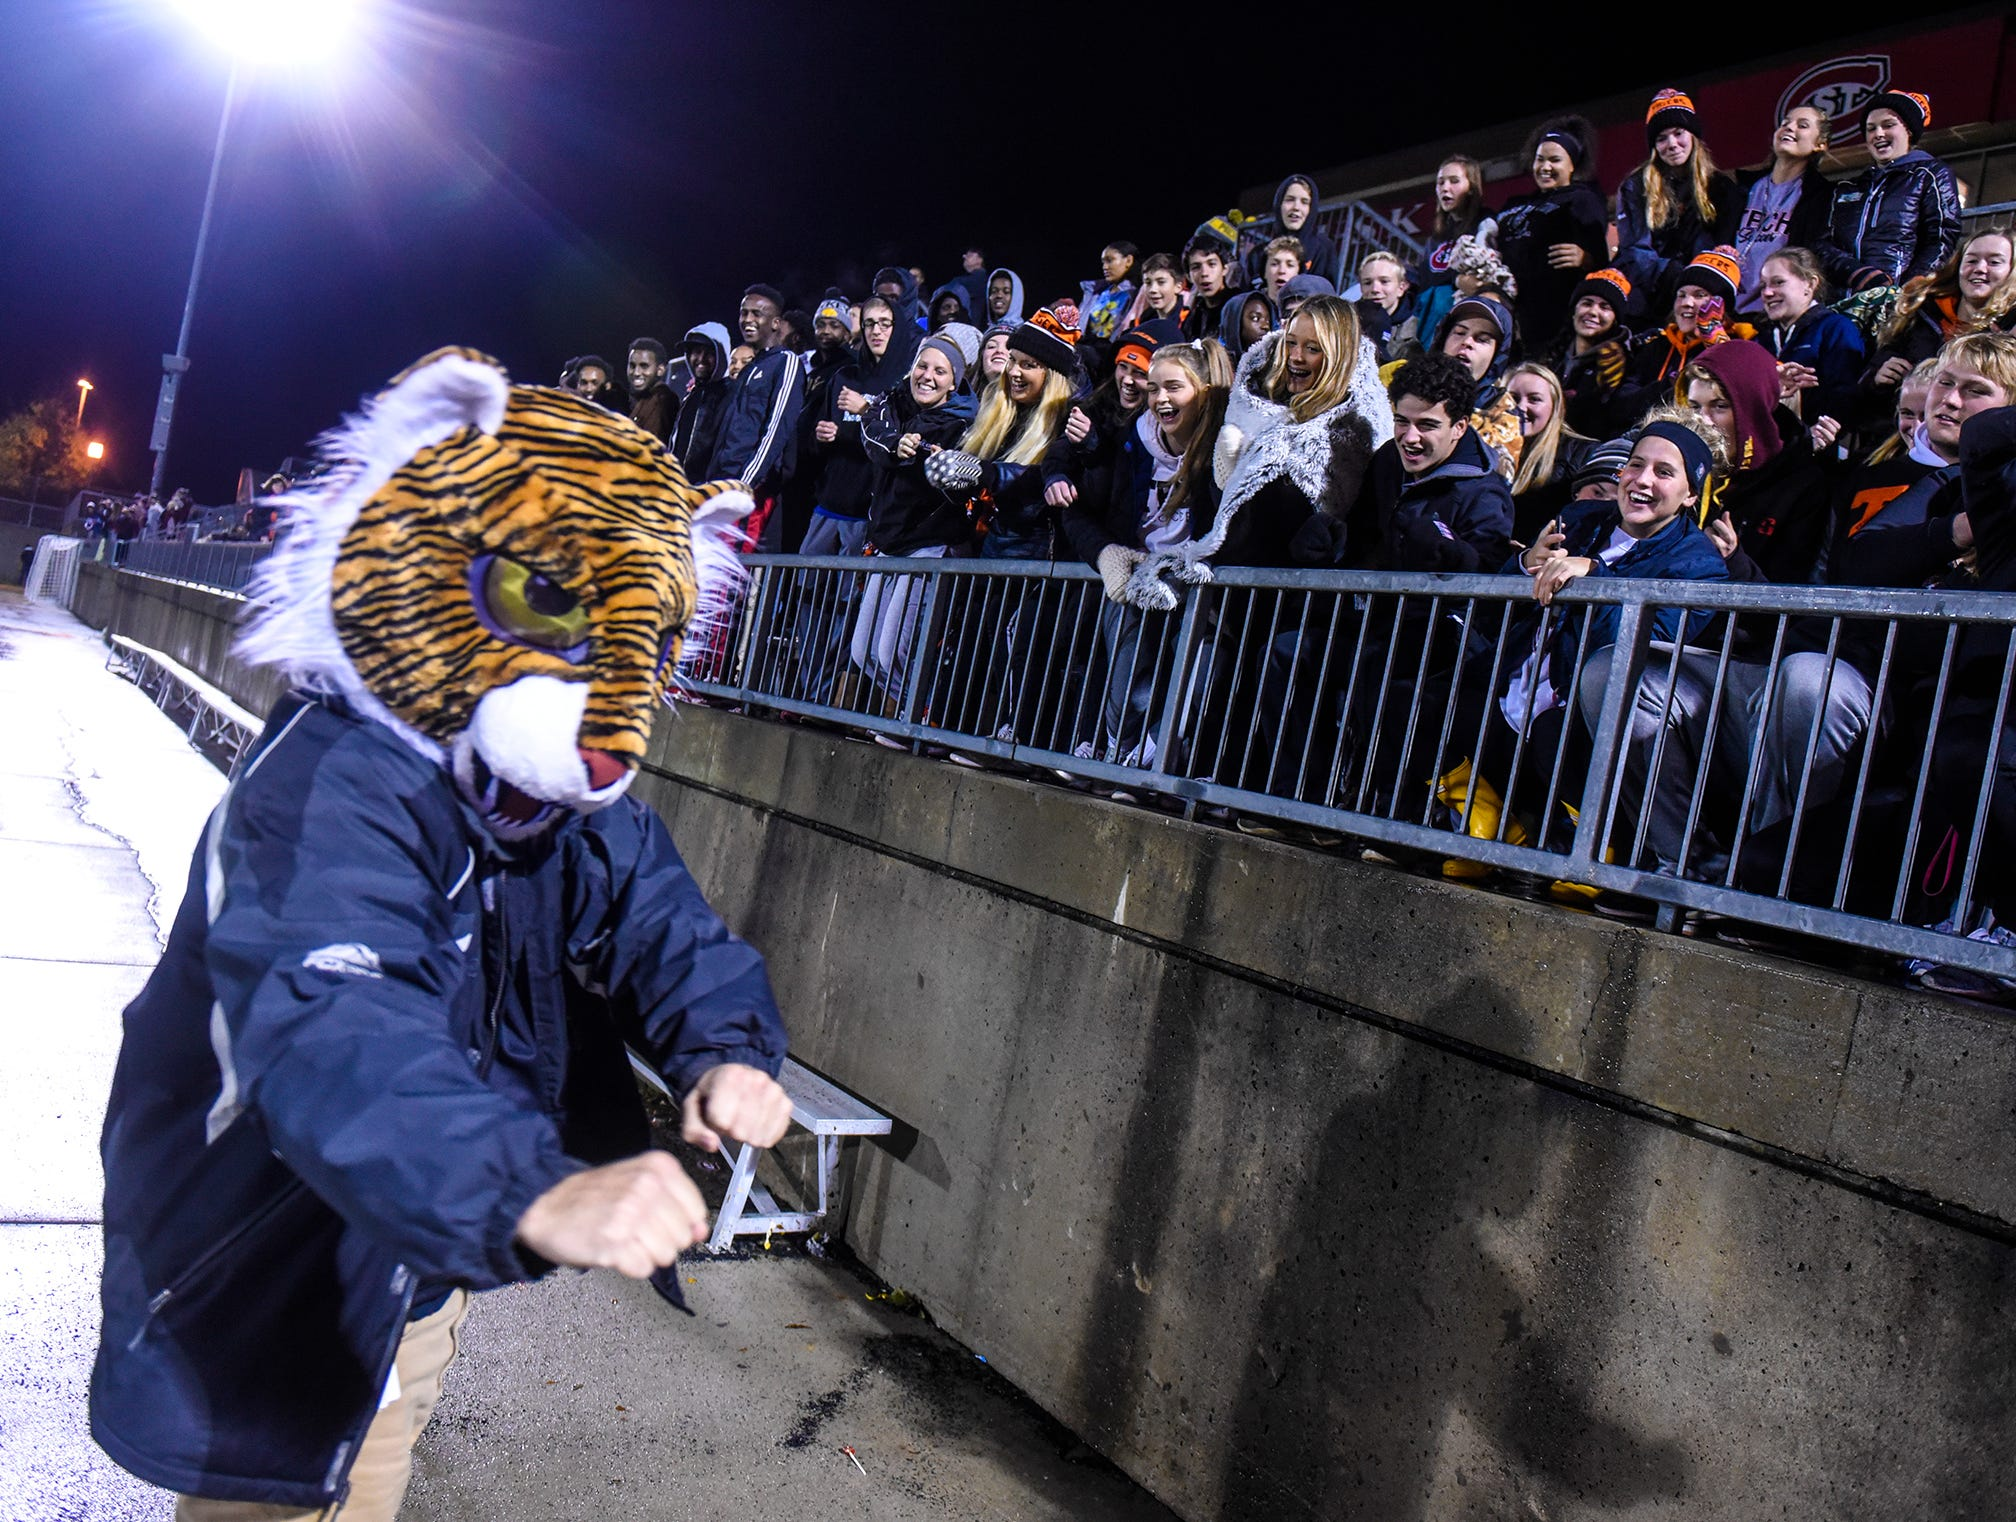 Tech fans get ready for the start of the Thursday, Oct. 25, Class 2A state quarterfinal game at Husky Stadium in St. Cloud.